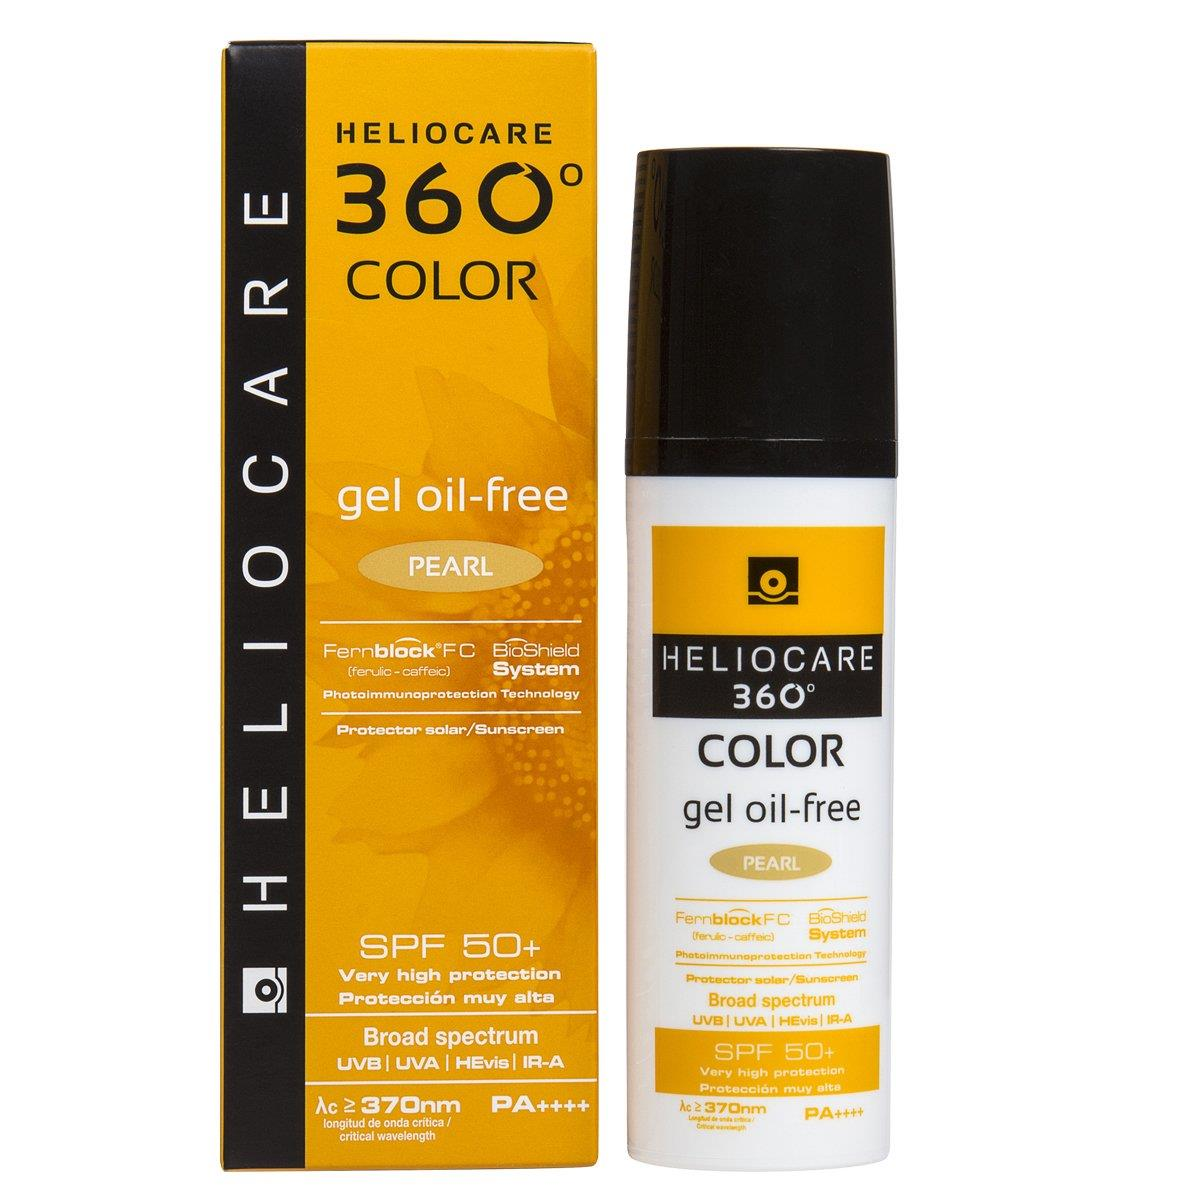 Heliocare 360 Color Gel Oil Free Pearl 50 Ml